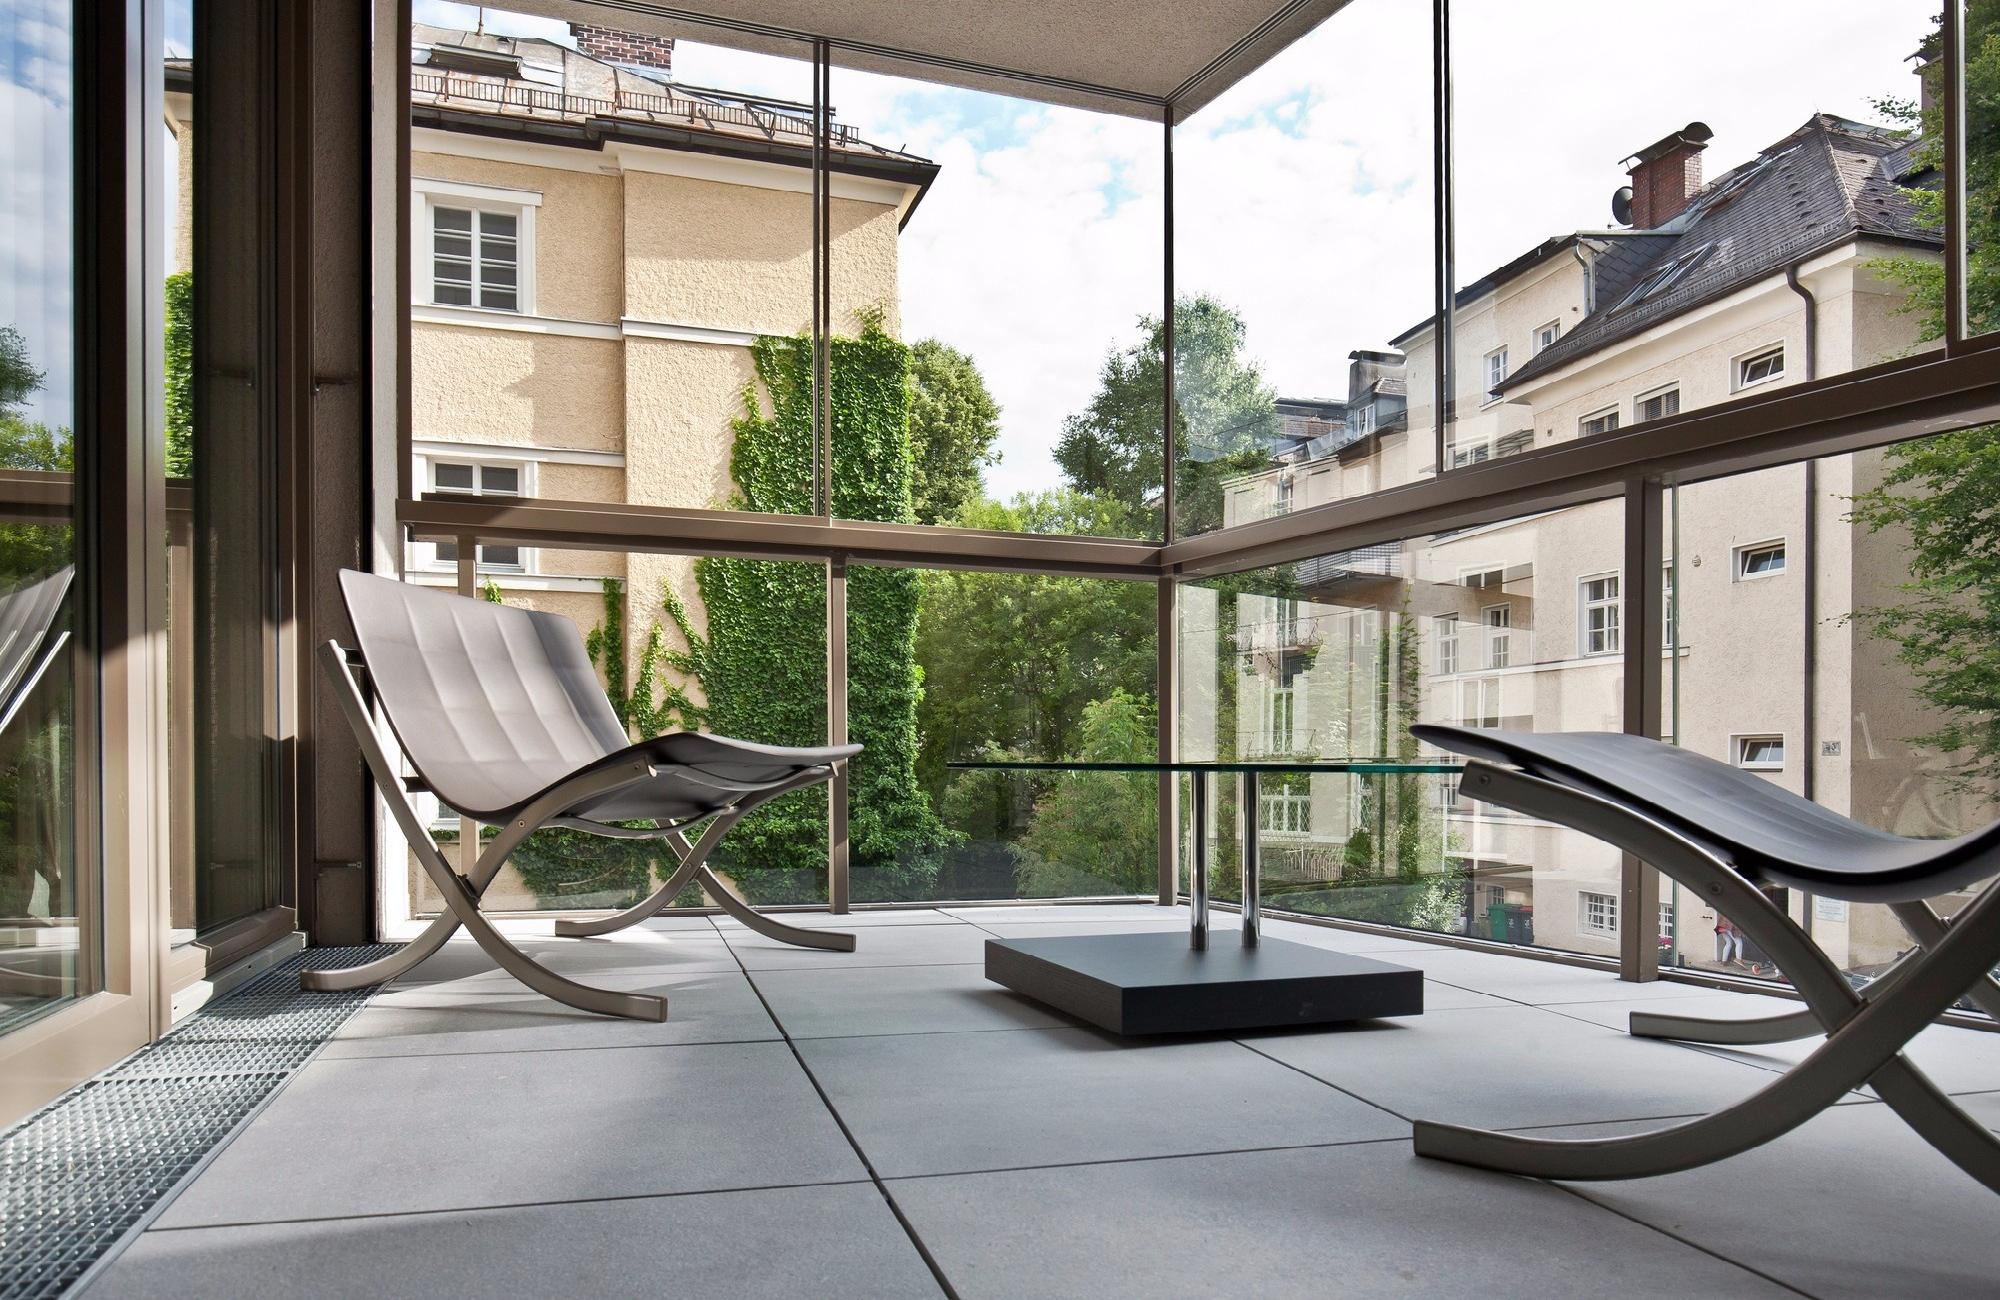 Real Estate in Austria - Luxurious apartments in a prime location of Salzburg